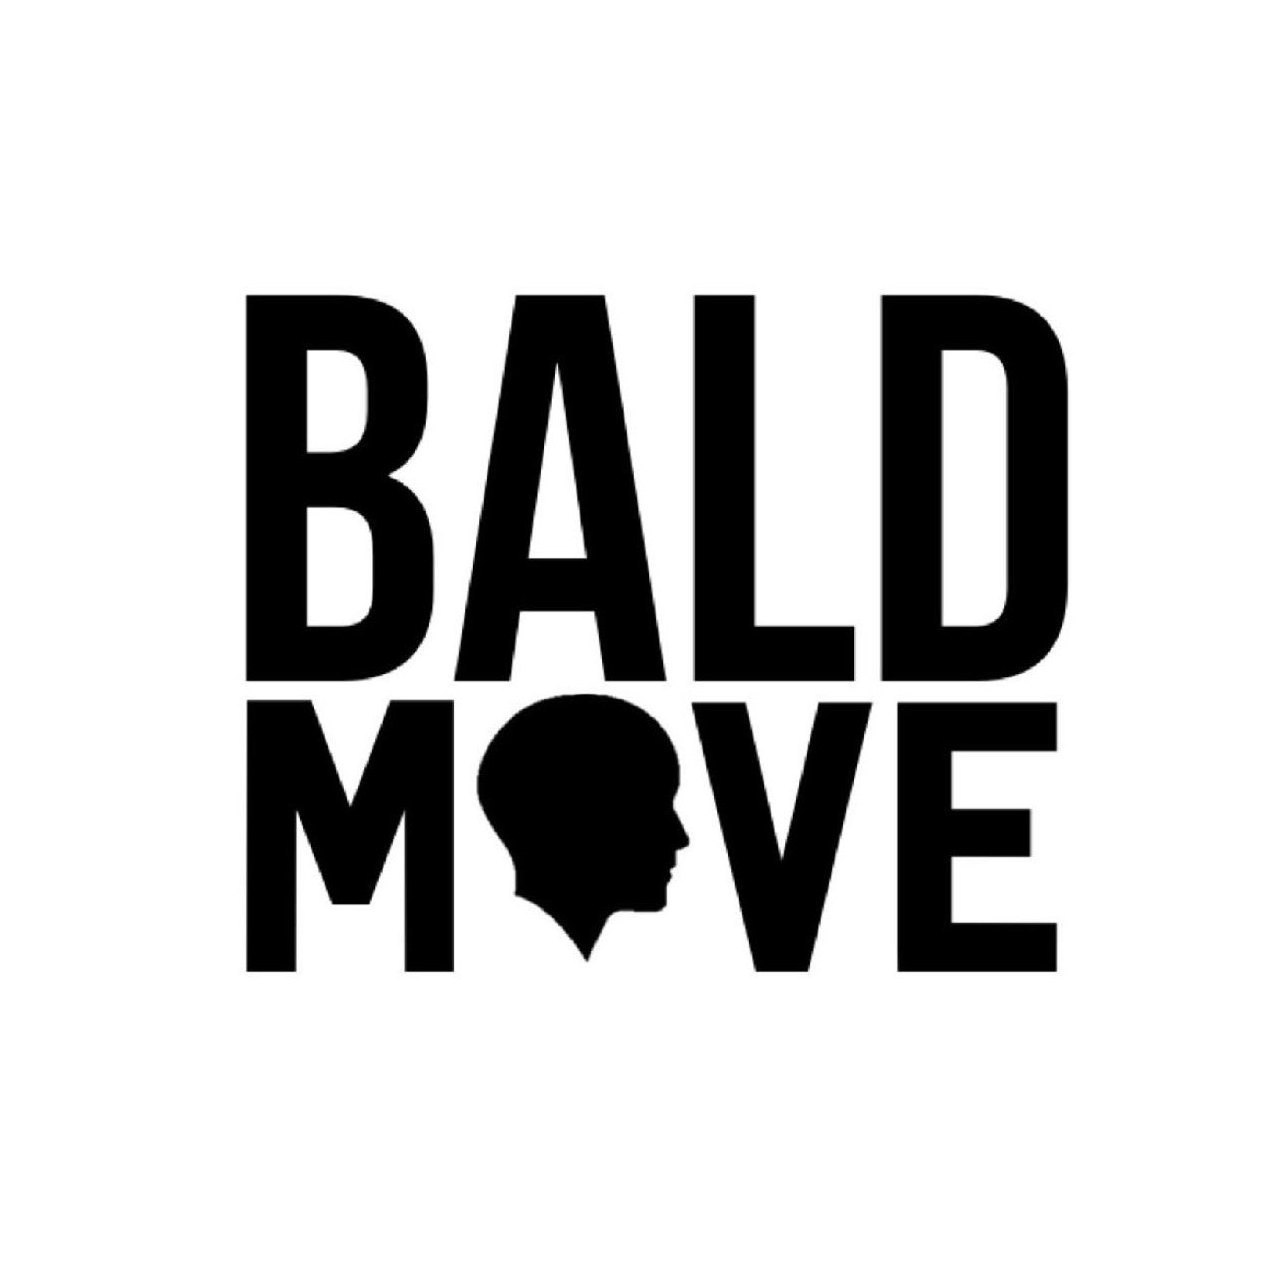 A Complete List of Bald Move's Podcasts